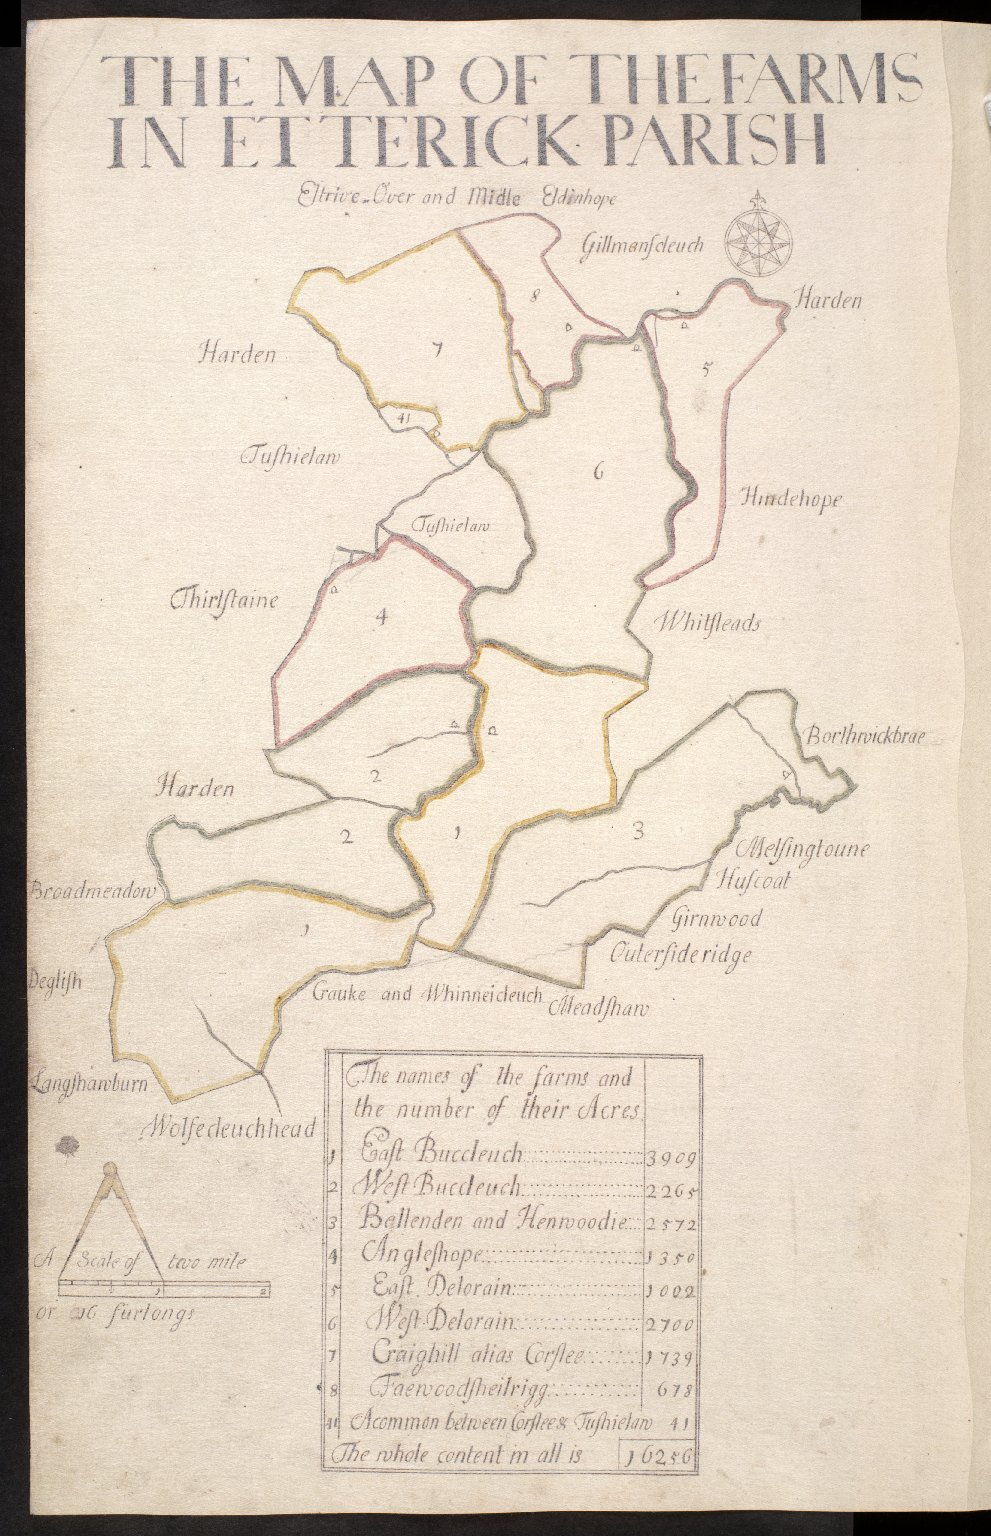 The Map of the Farms in Etterick Parish [1 of 1]